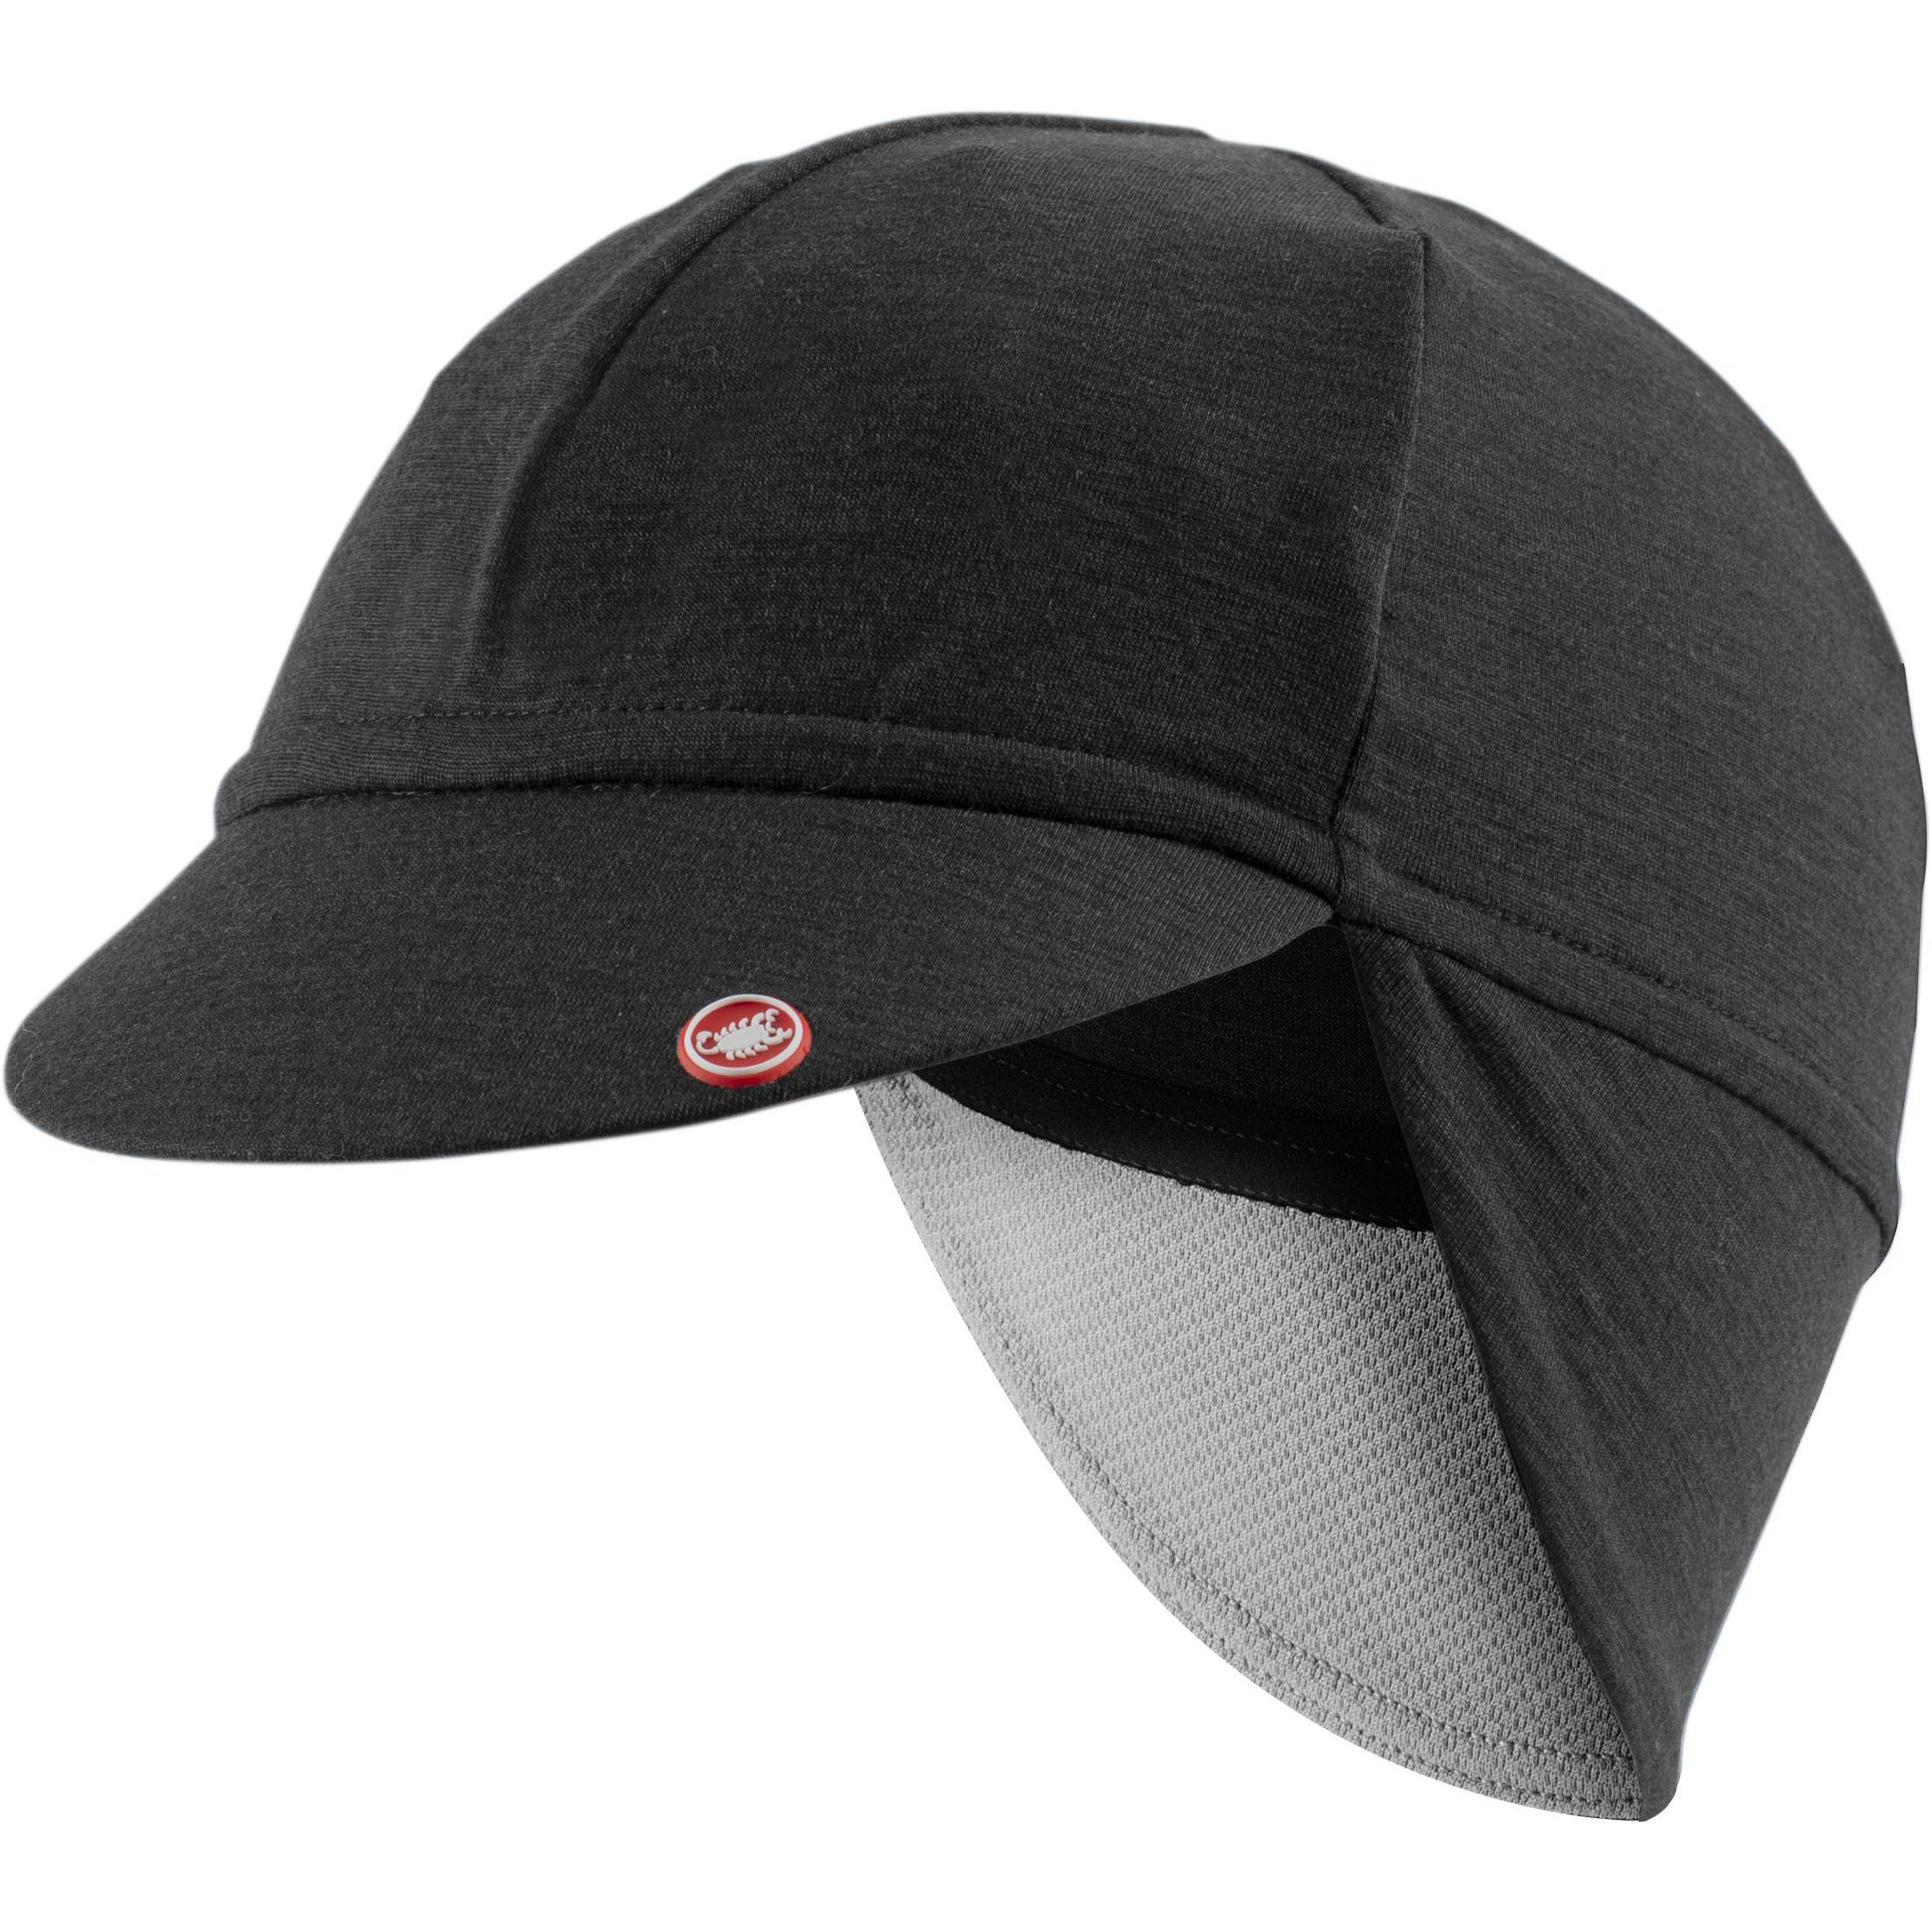 Castelli-Castelli Bandito Cap-Light Black-UNI-CS205480858-saddleback-elite-performance-cycling